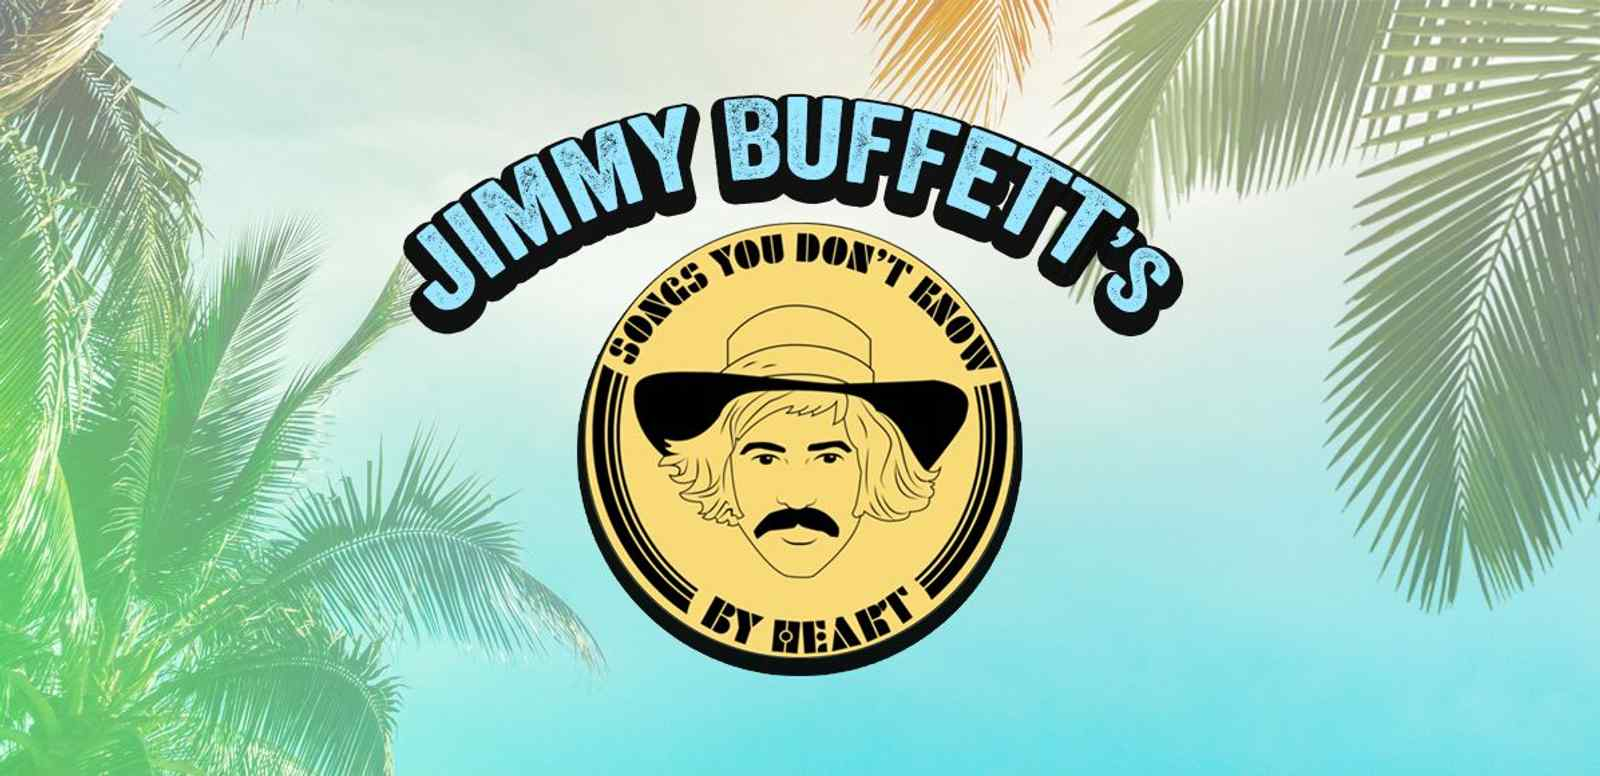 JIMMY BUFFETT SINGS SONGS YOU DON'T KNOW BY HEART